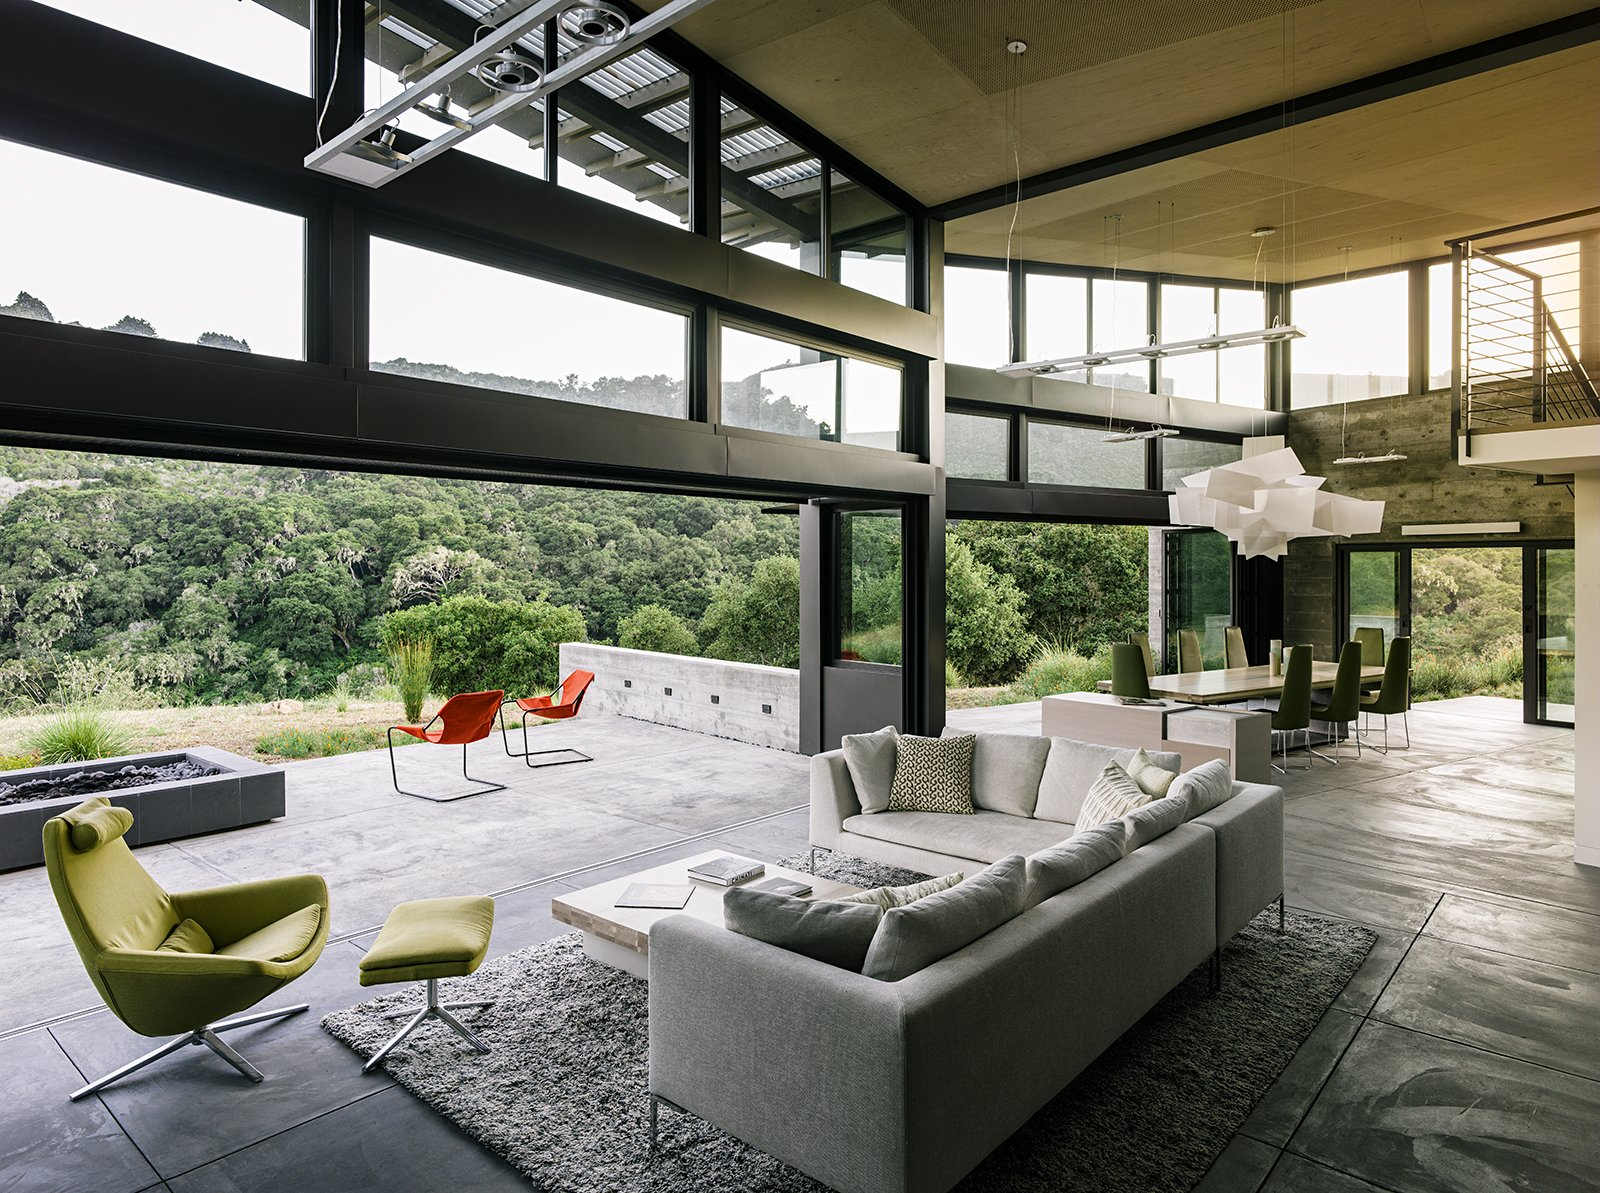 In the open living-dining area, a sofa by Antonio Citterio joins a Metropolitan chair and ottoman, all from B&B Italia. A Big Bang fixture from Foscarini hangs above the dining room table, designed by Feldman and surrounded by chairs from Ligne Roset.  Photo 7 of 11 in Retirement Never Looked Better and More Sustainable